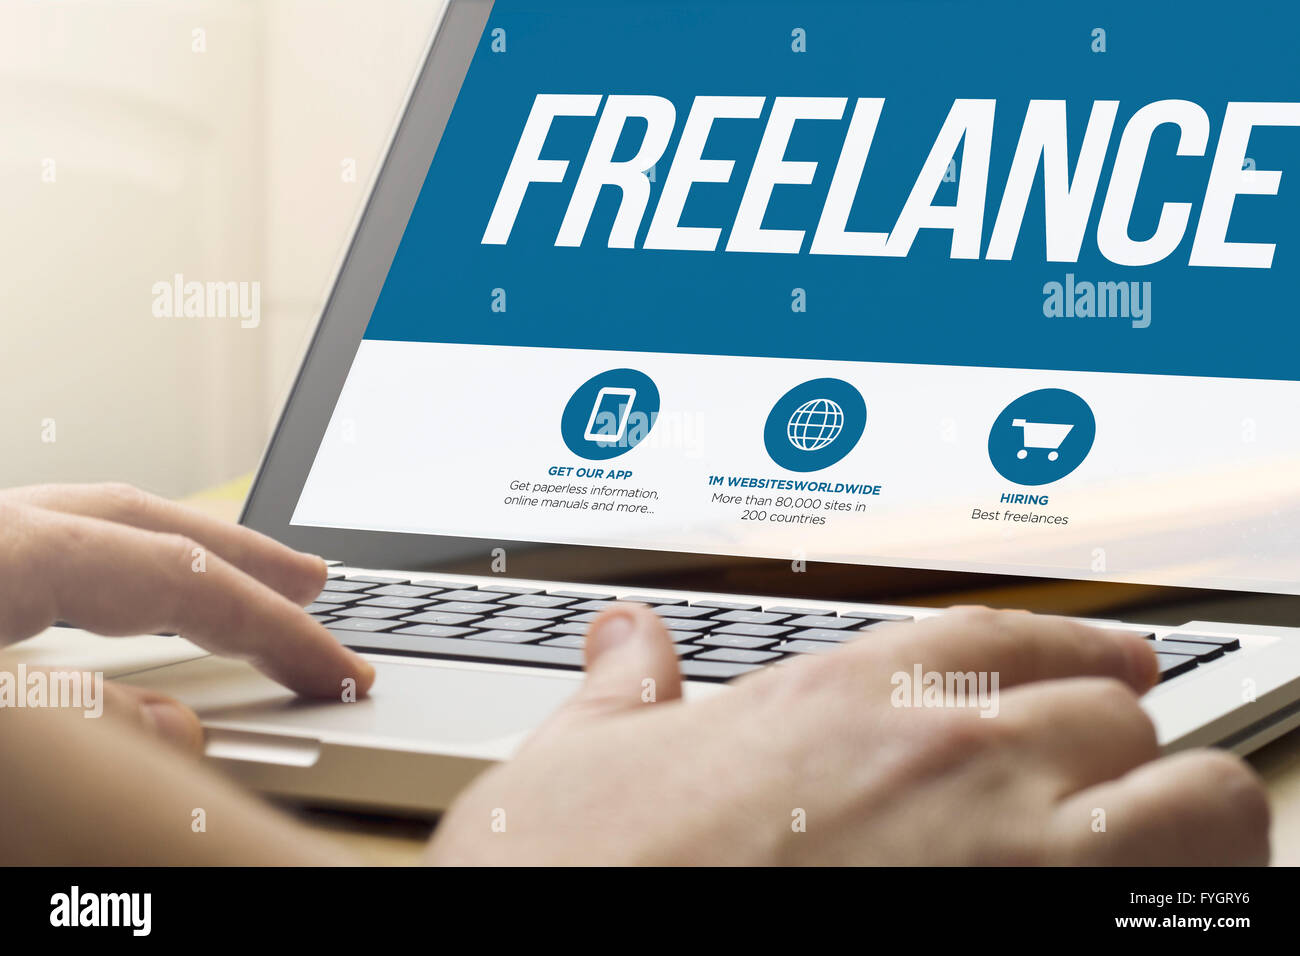 online work concept: man using a laptop with freelance on the screen. Screen graphics are made up. - Stock Image